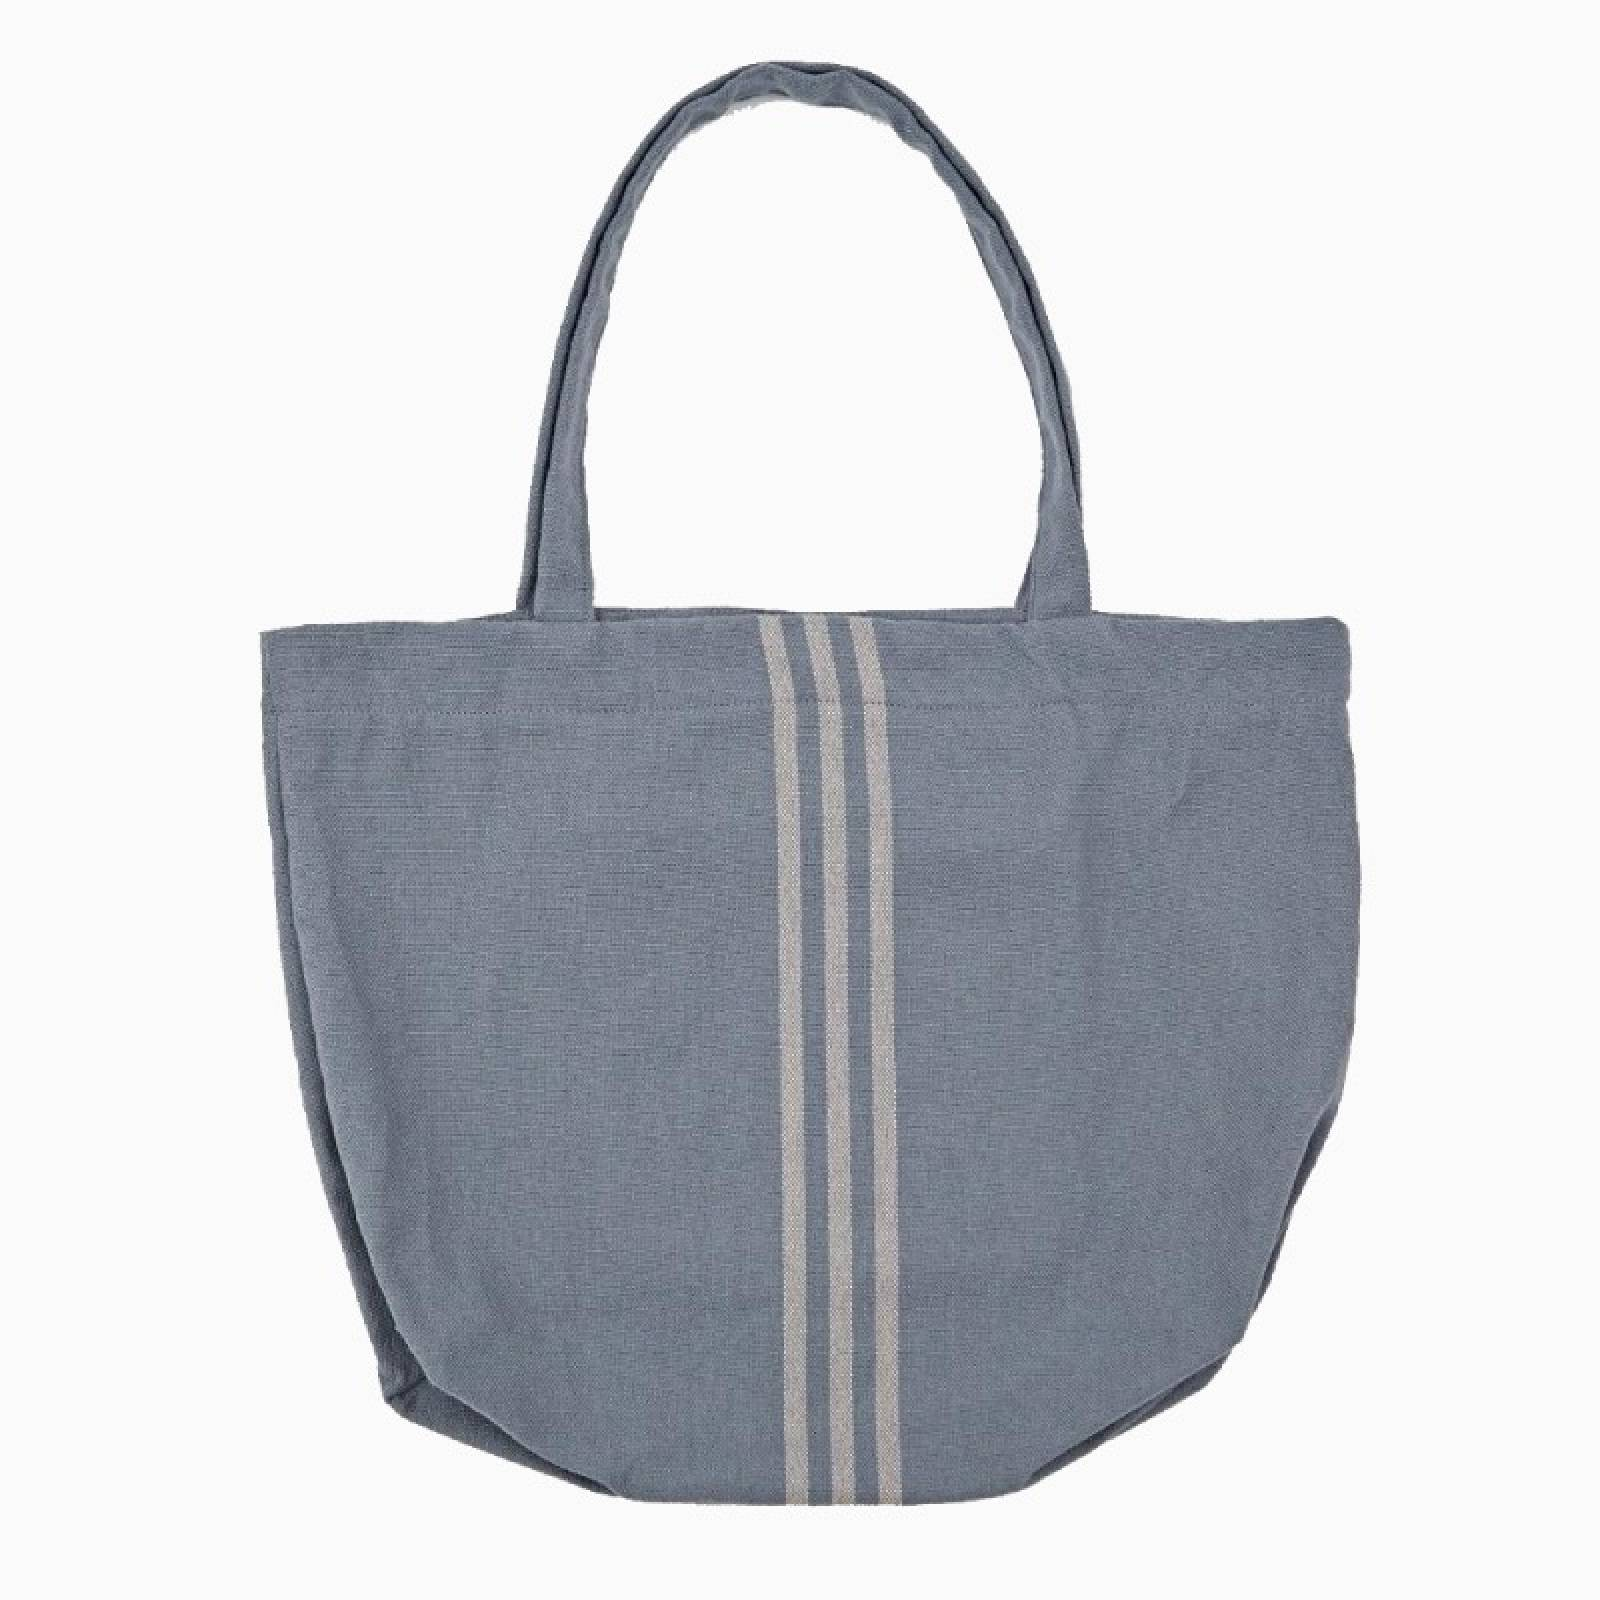 Maxime Blue & Linen Beach Bag - Recycled Plastic Bottles